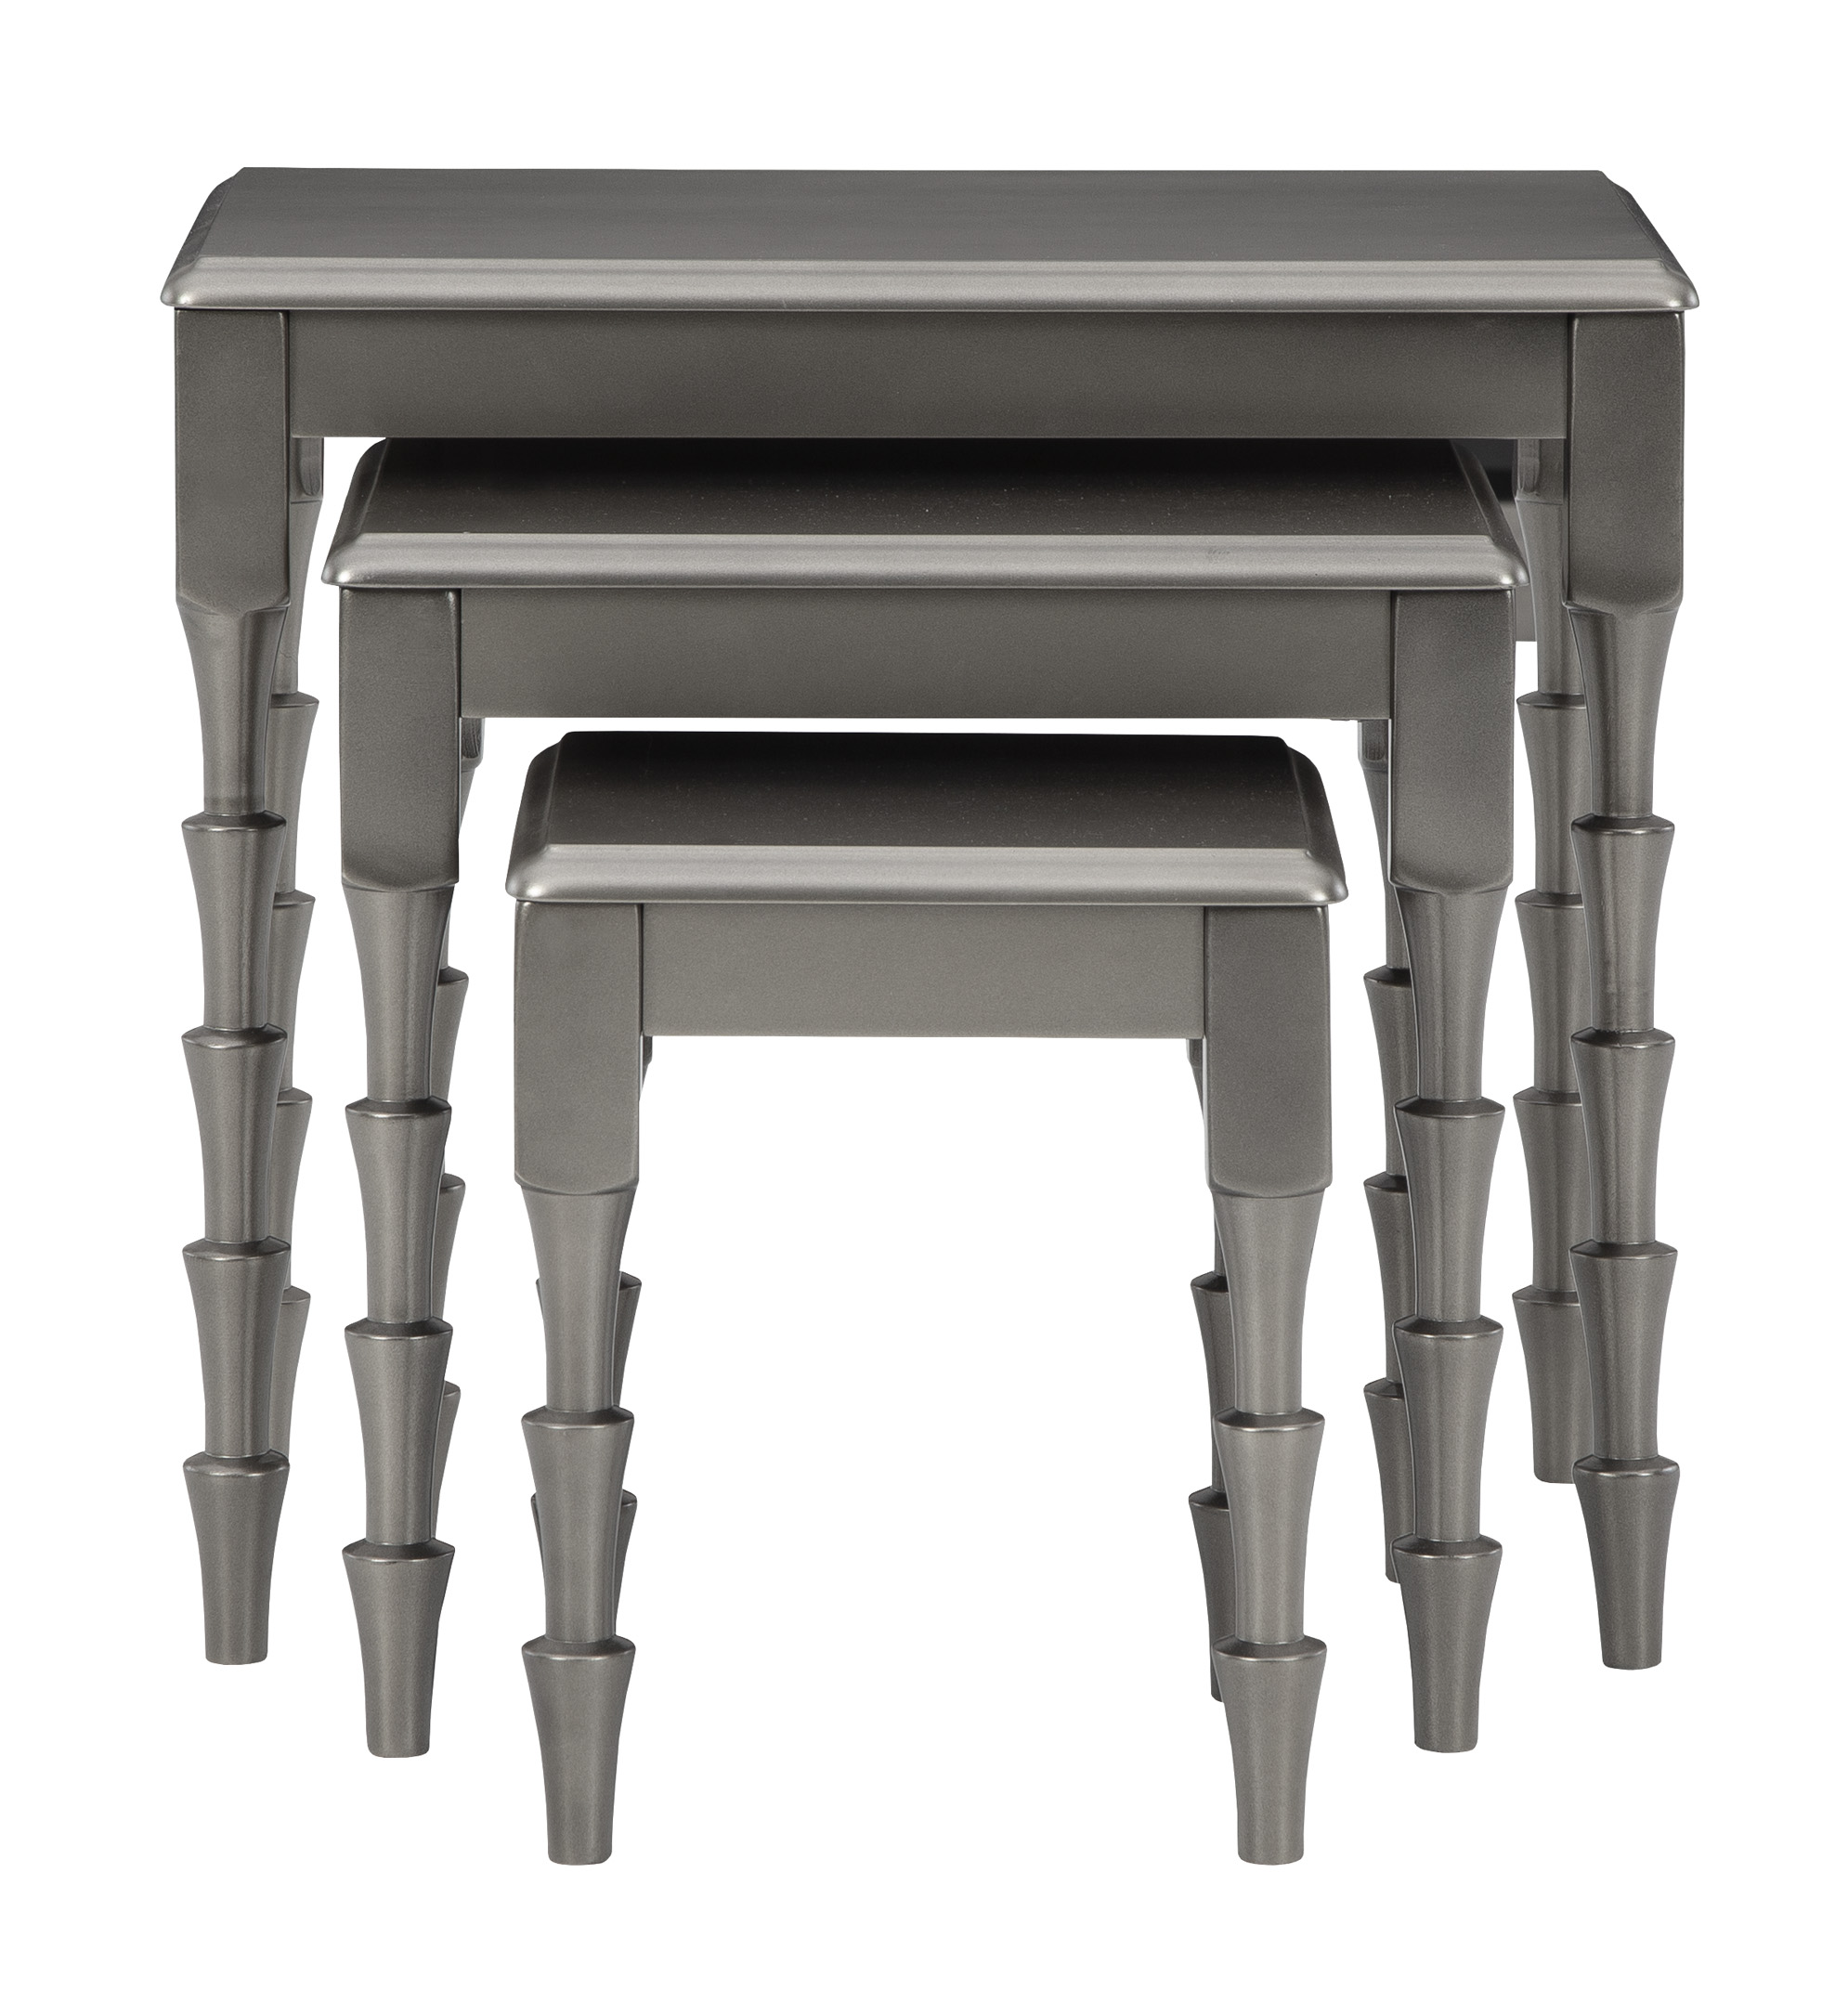 Larkendale Nesting Tables by Signature Design by Ashley at Northeast Factory Direct